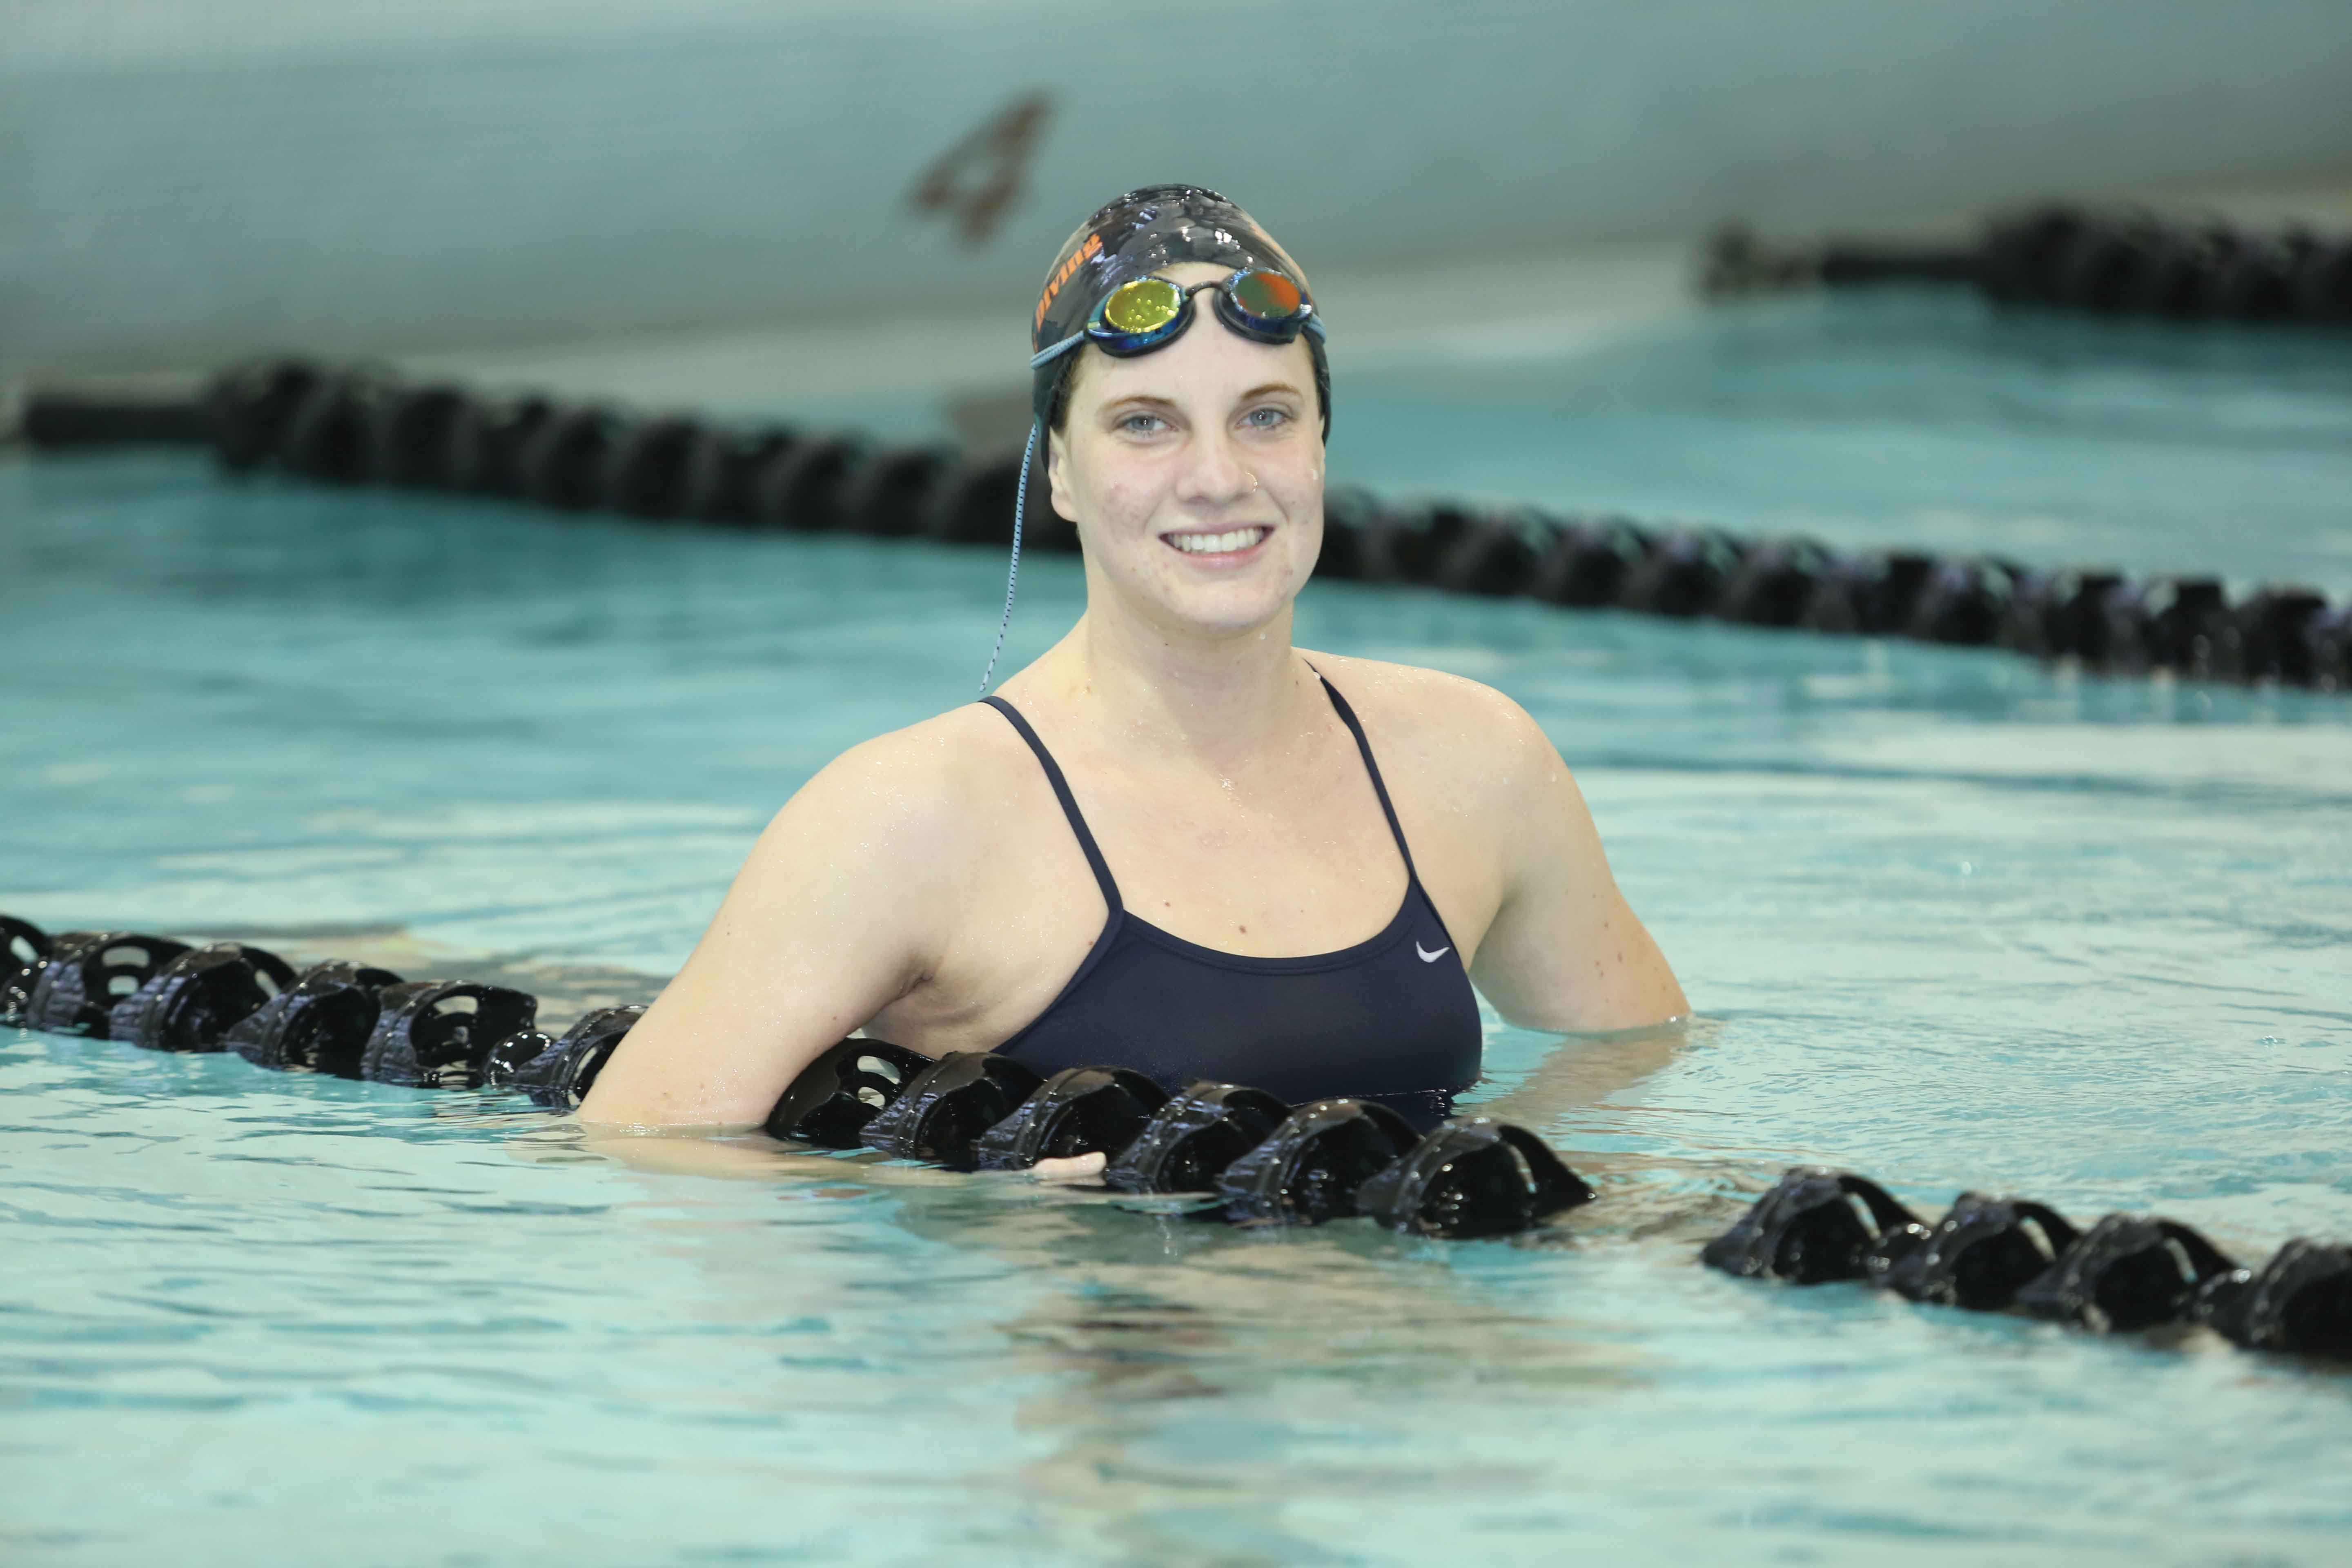 Freshman swimmer Alyssa Greymont was the only American female to win gold at the Deaf World Championship in 2015. She took first place in the 800 and 400-meter freestyles.